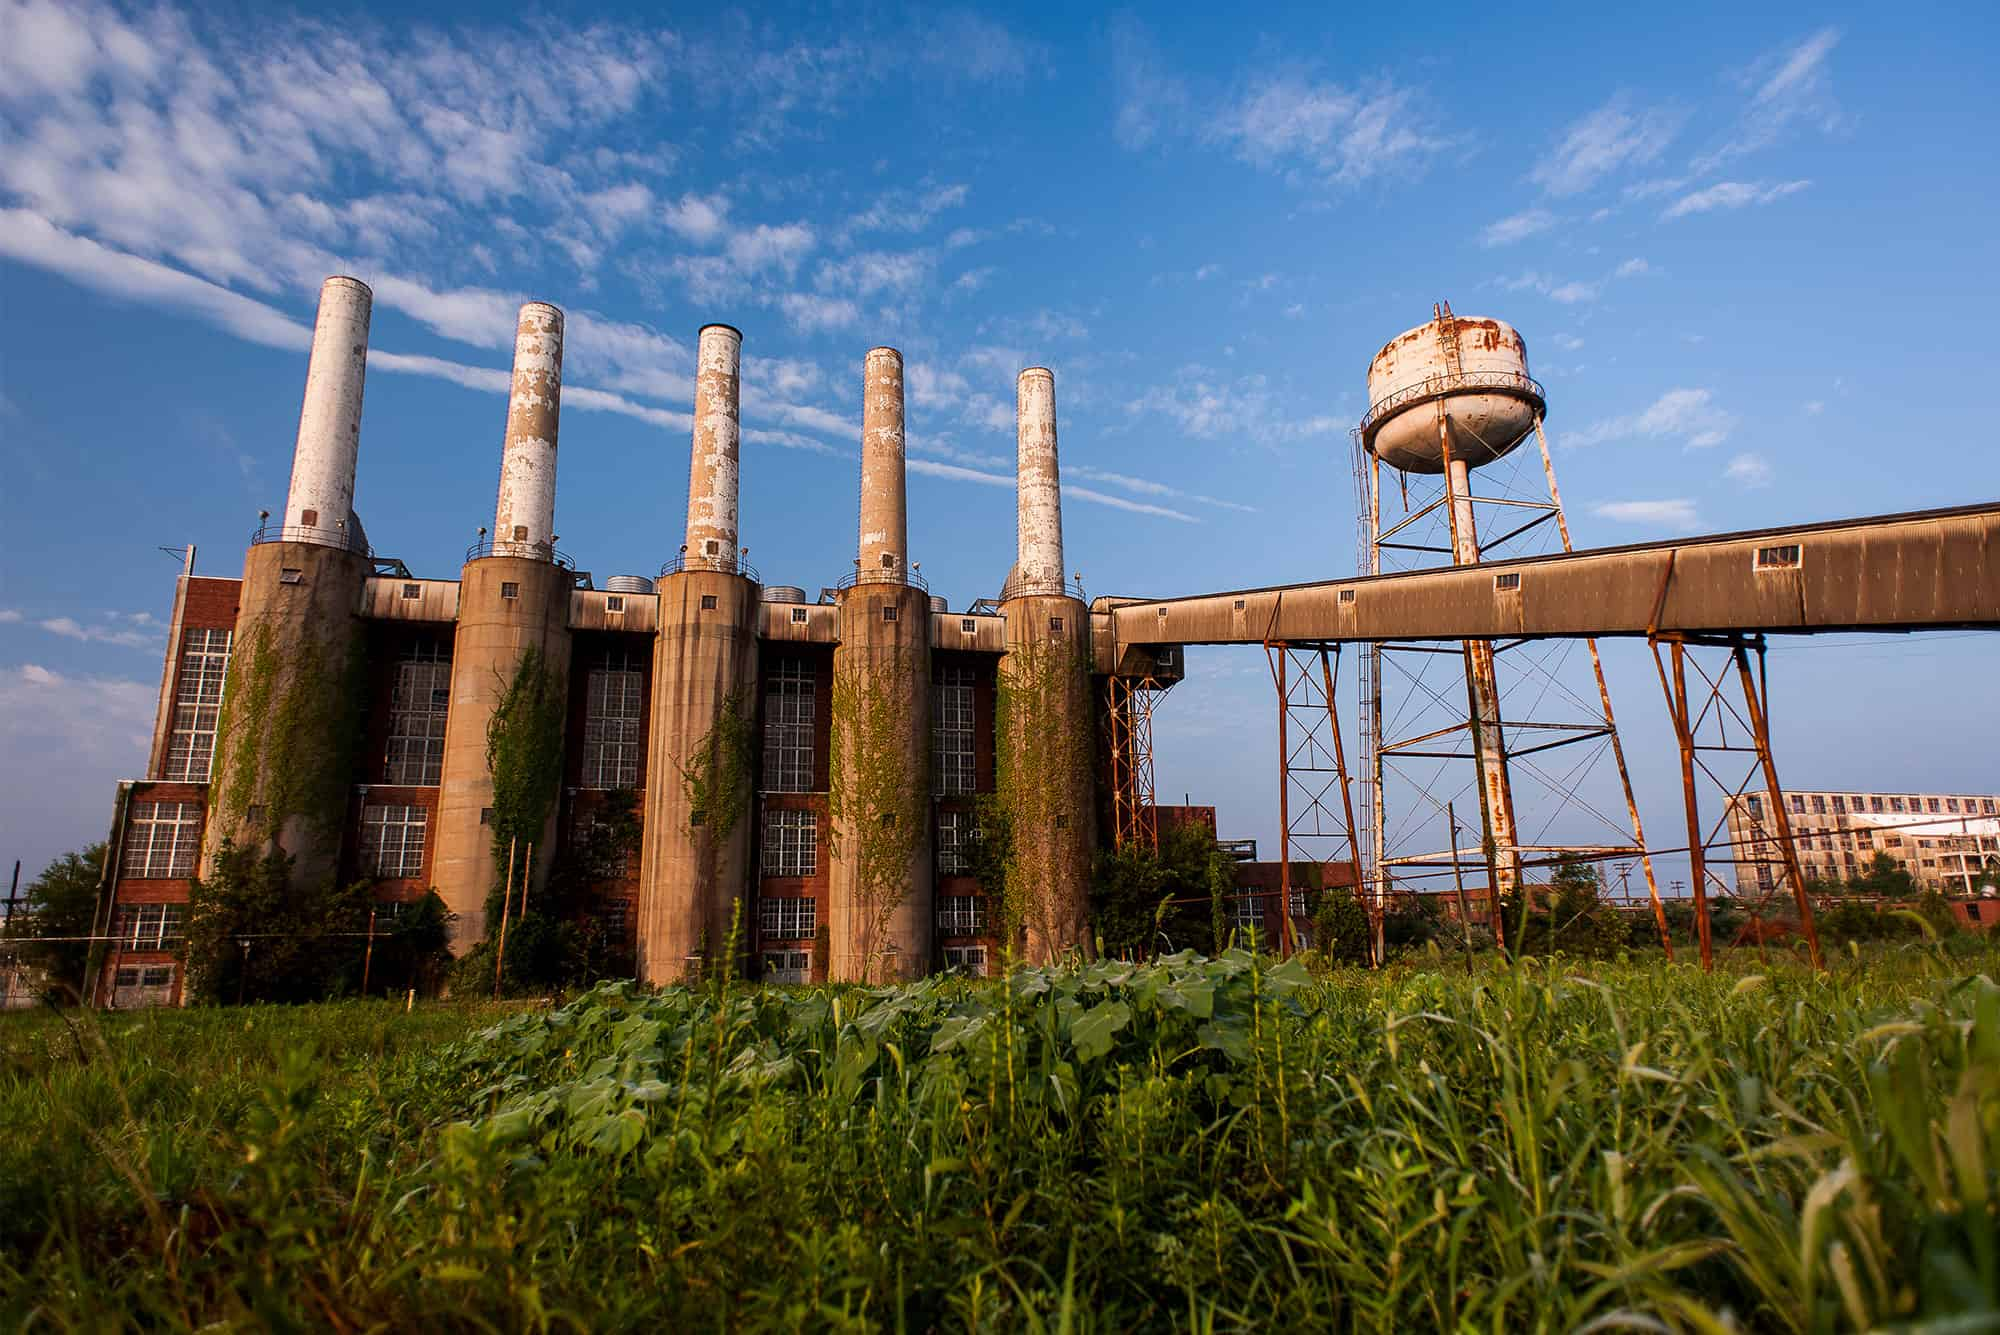 Abandoned energy plant with water tower on surplus property or brownfield sites